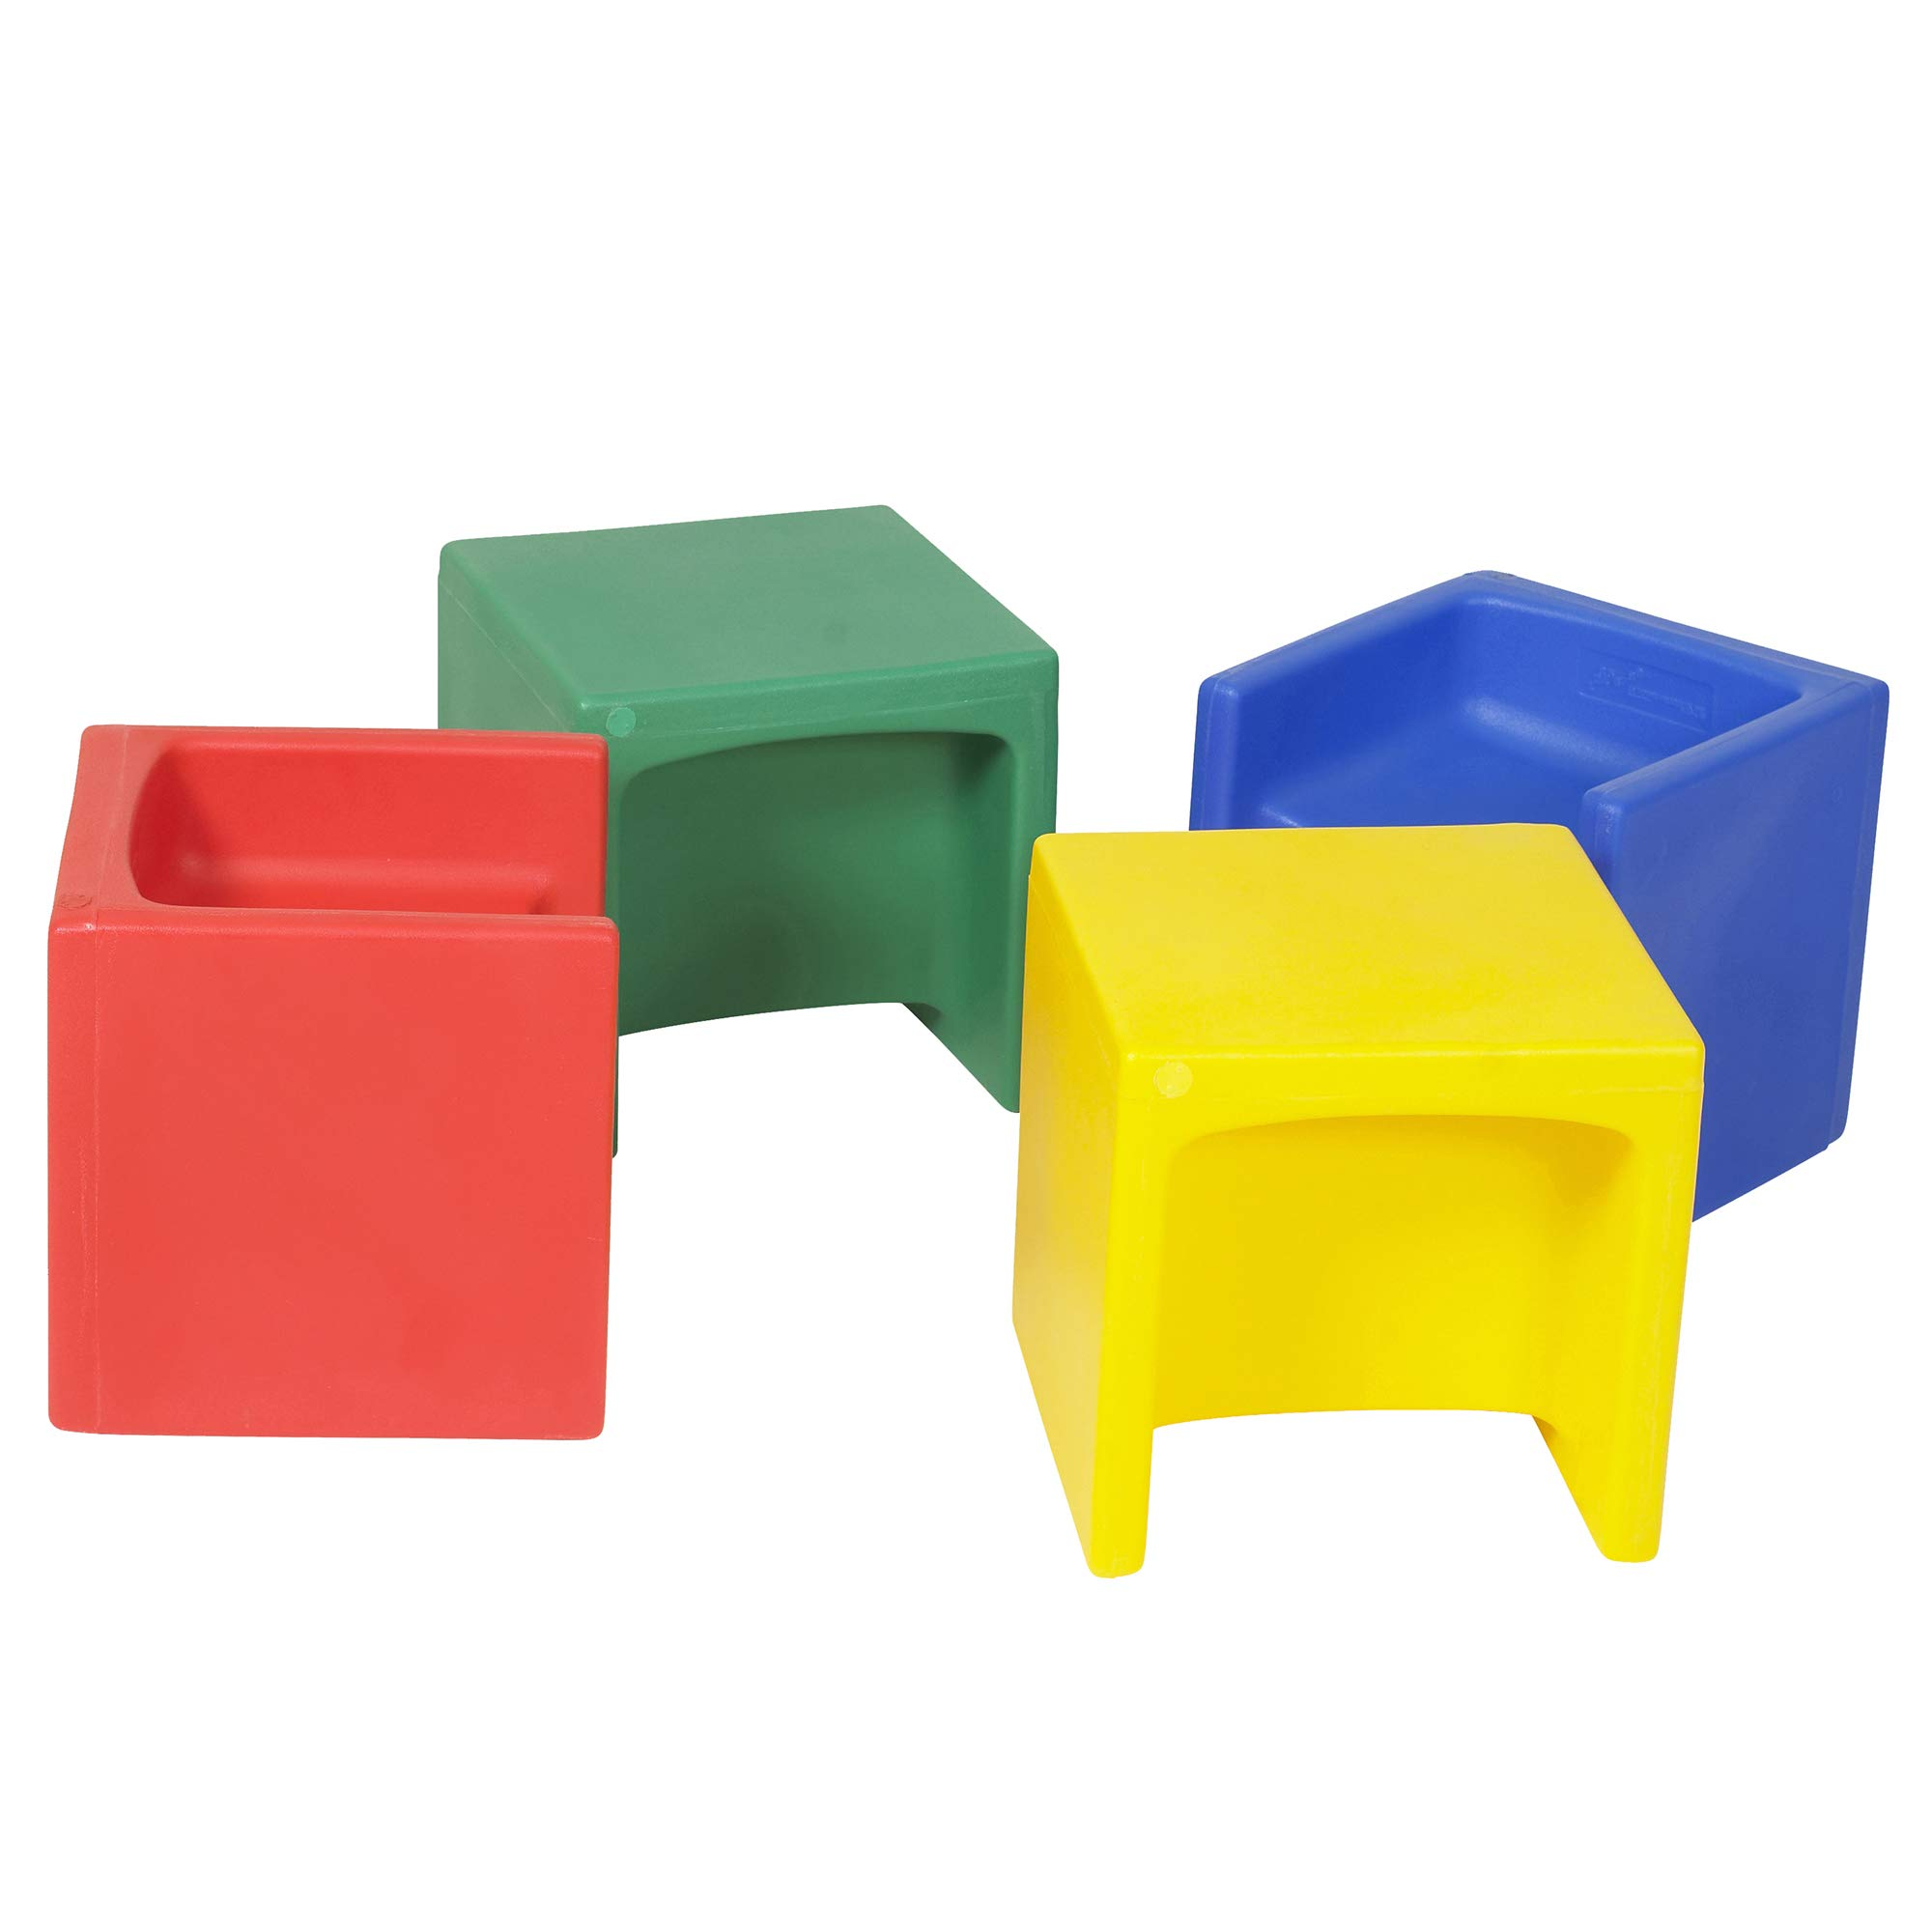 Children's Factory Cube Chairs, 15'' by 15'' by 15'' (Set of 4) - Bright Primary Colors - Versatile - Use as a Low or High Chair, Table and Adult Seat - Durable and Lightweight - Indoor or Outdoor Use by Children's Factory